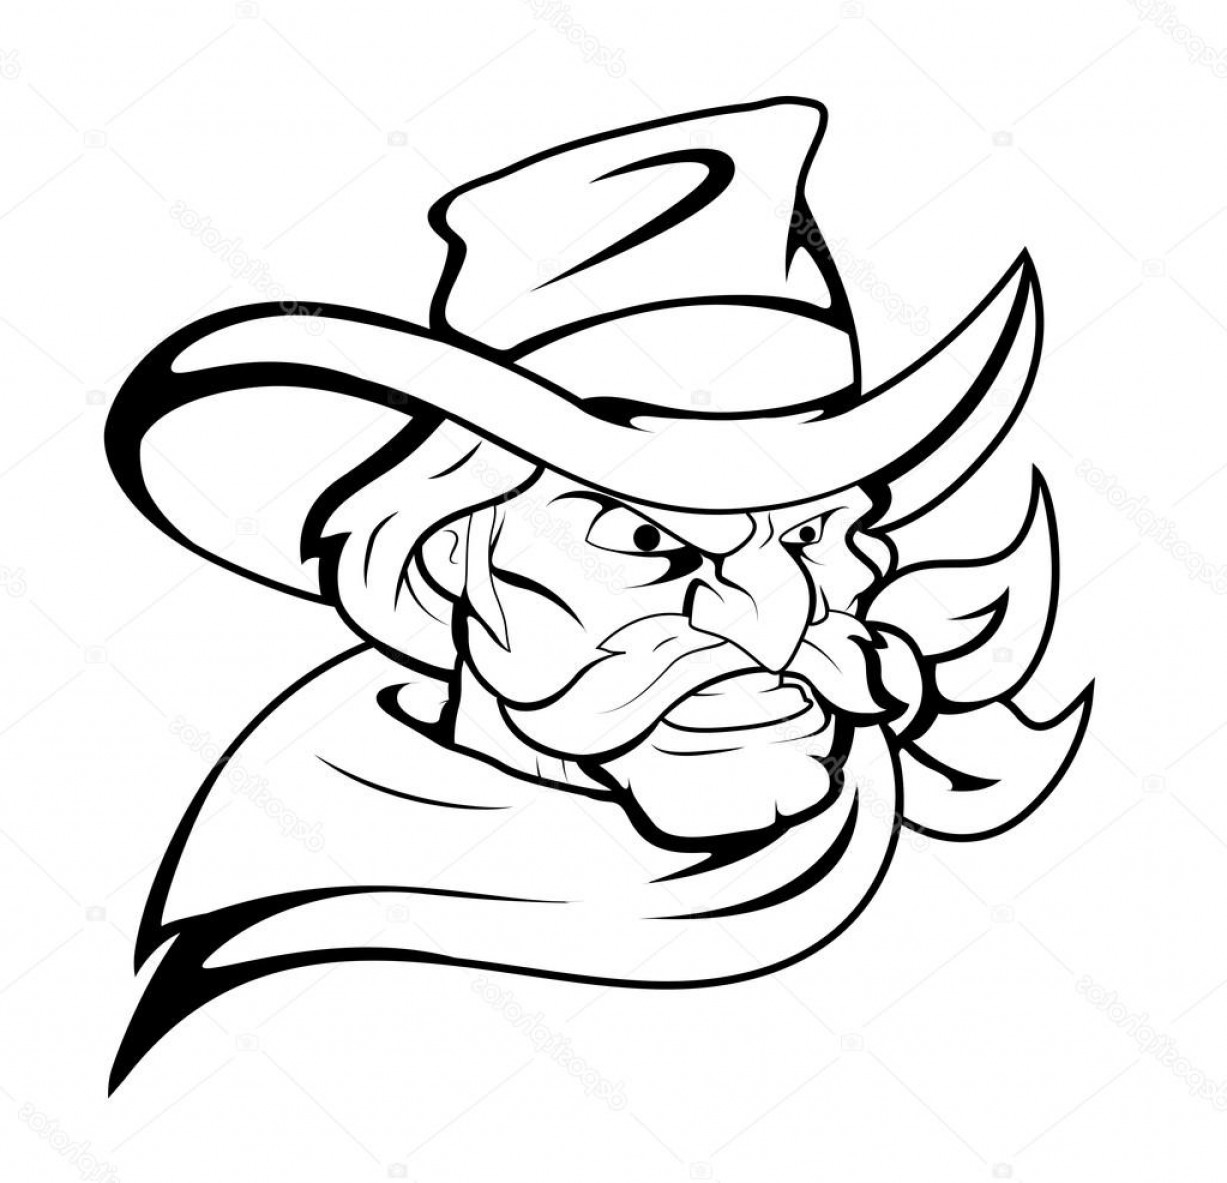 Cowboys Line Drawings Vector: Stock Illustration Cowboy Mascot Vector Character